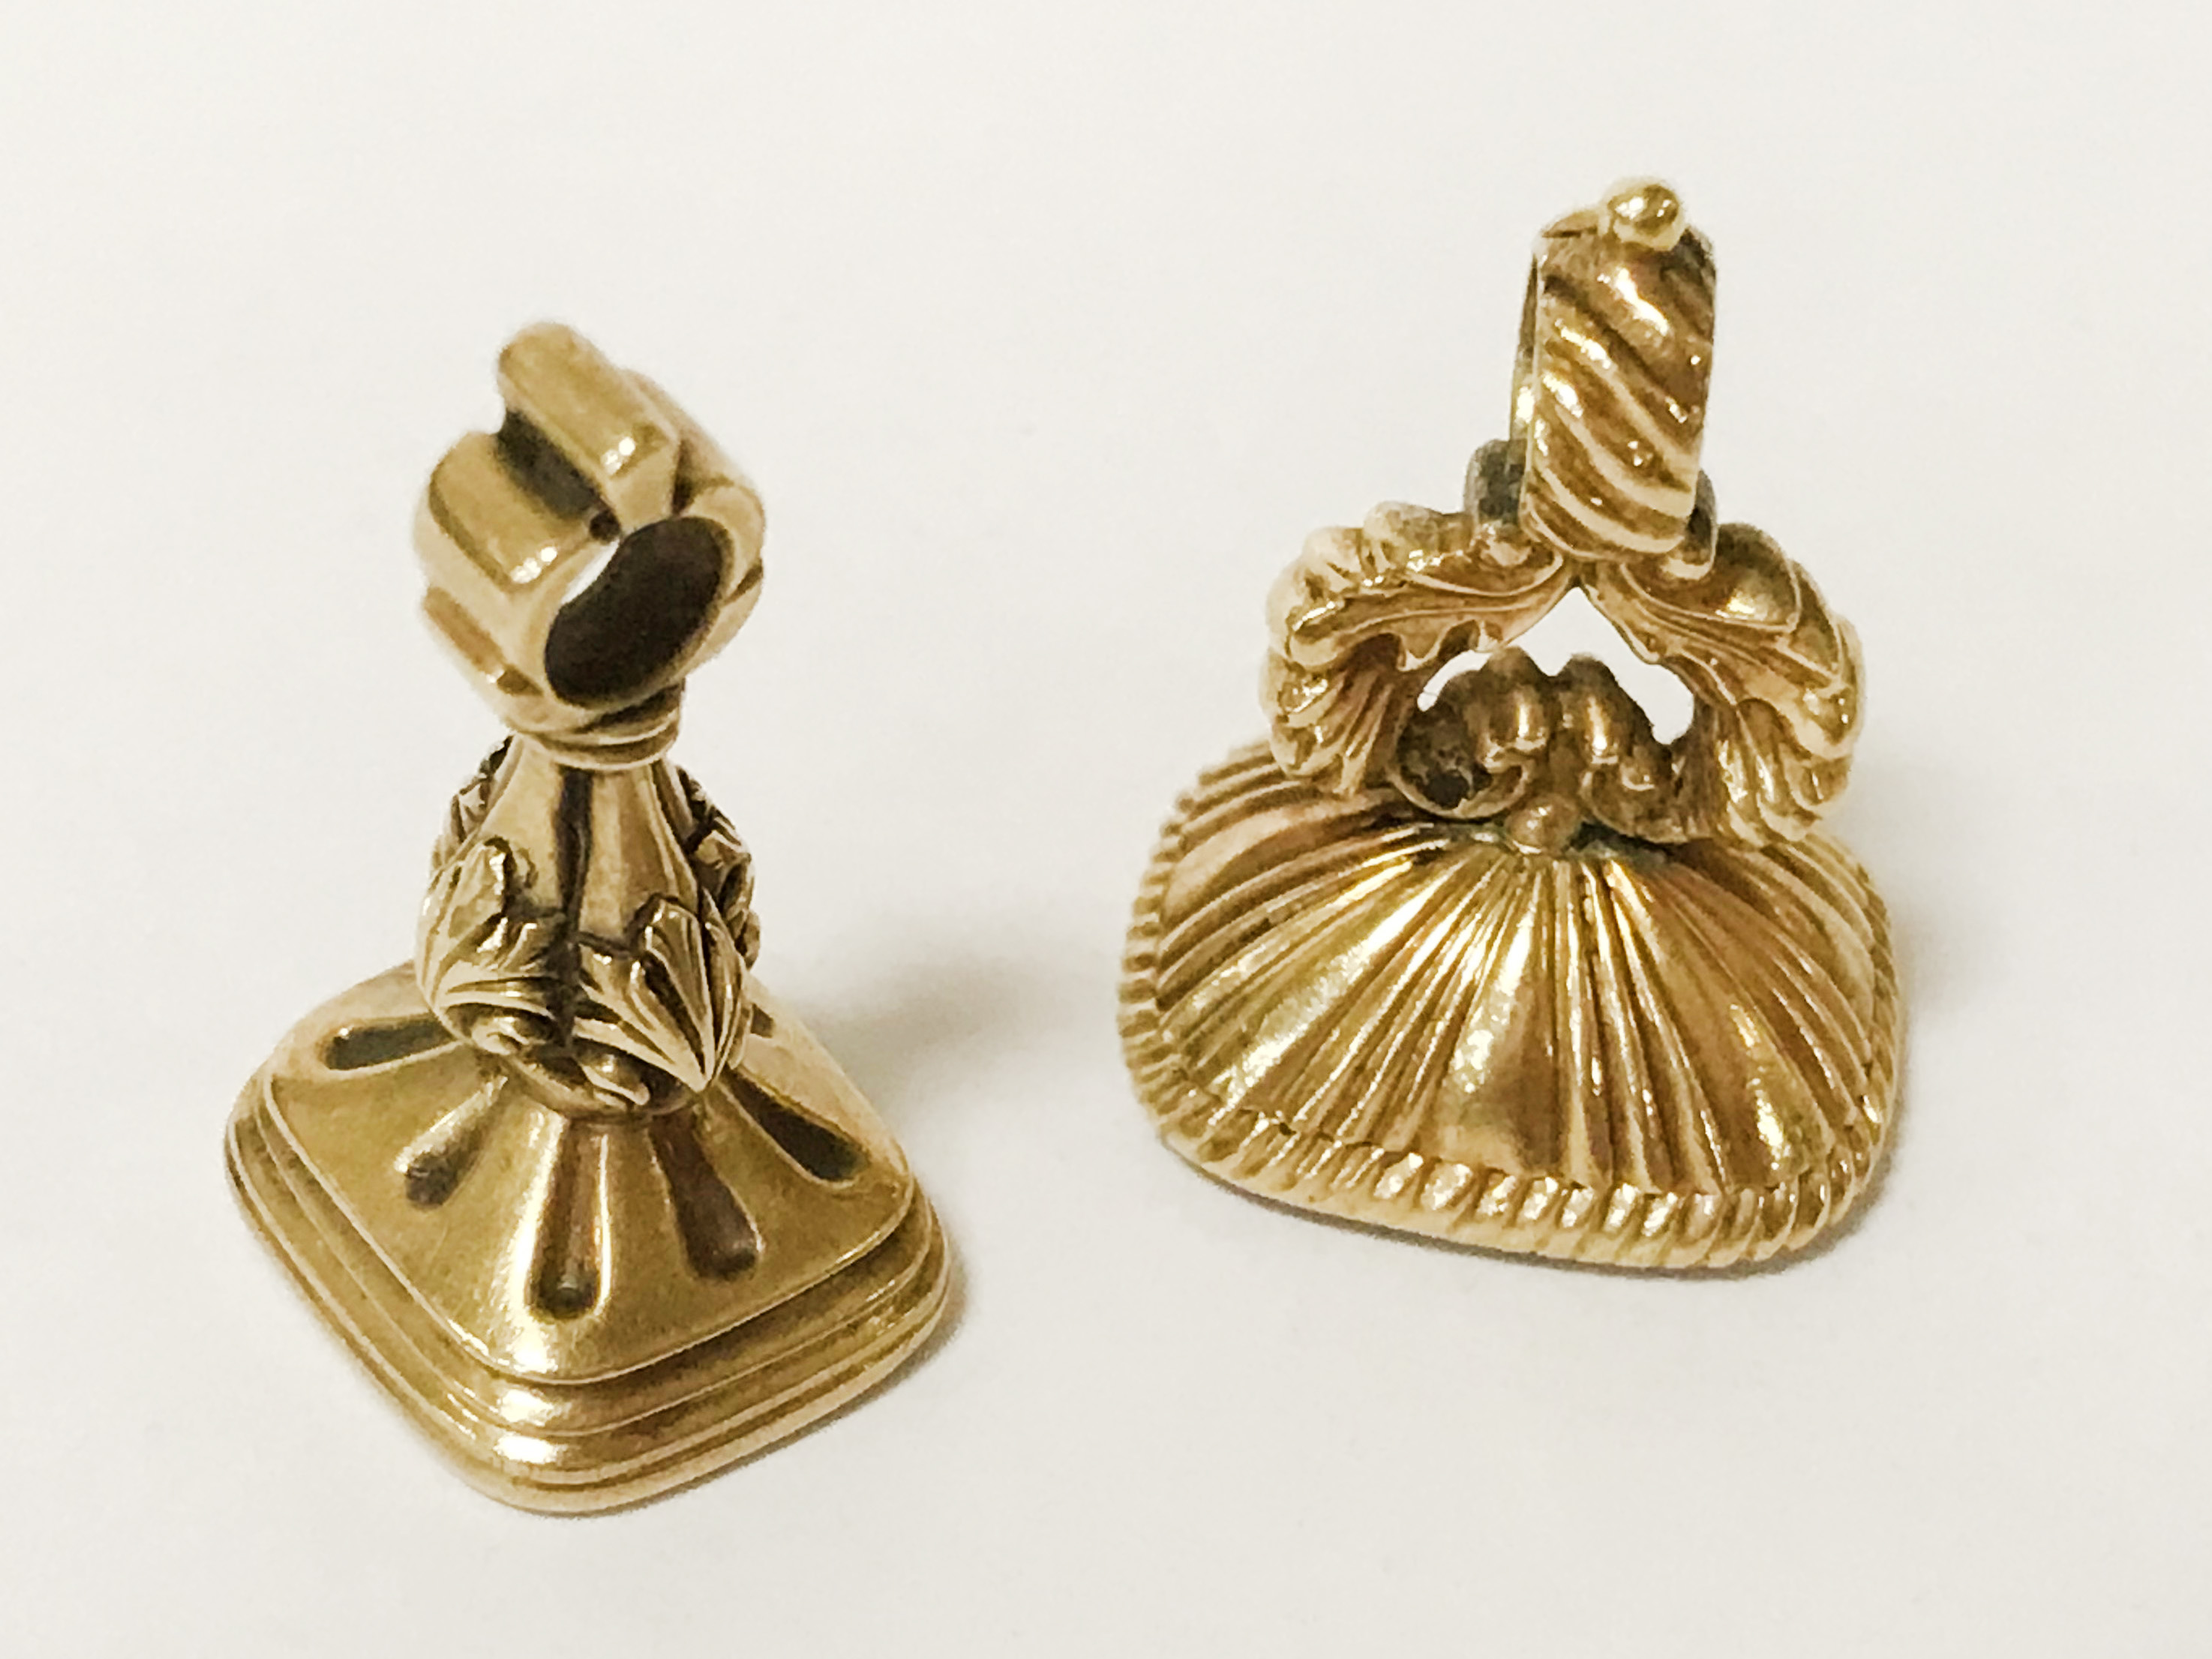 TWO VICTORIAN GEMSTONE SEALS - Image 2 of 2